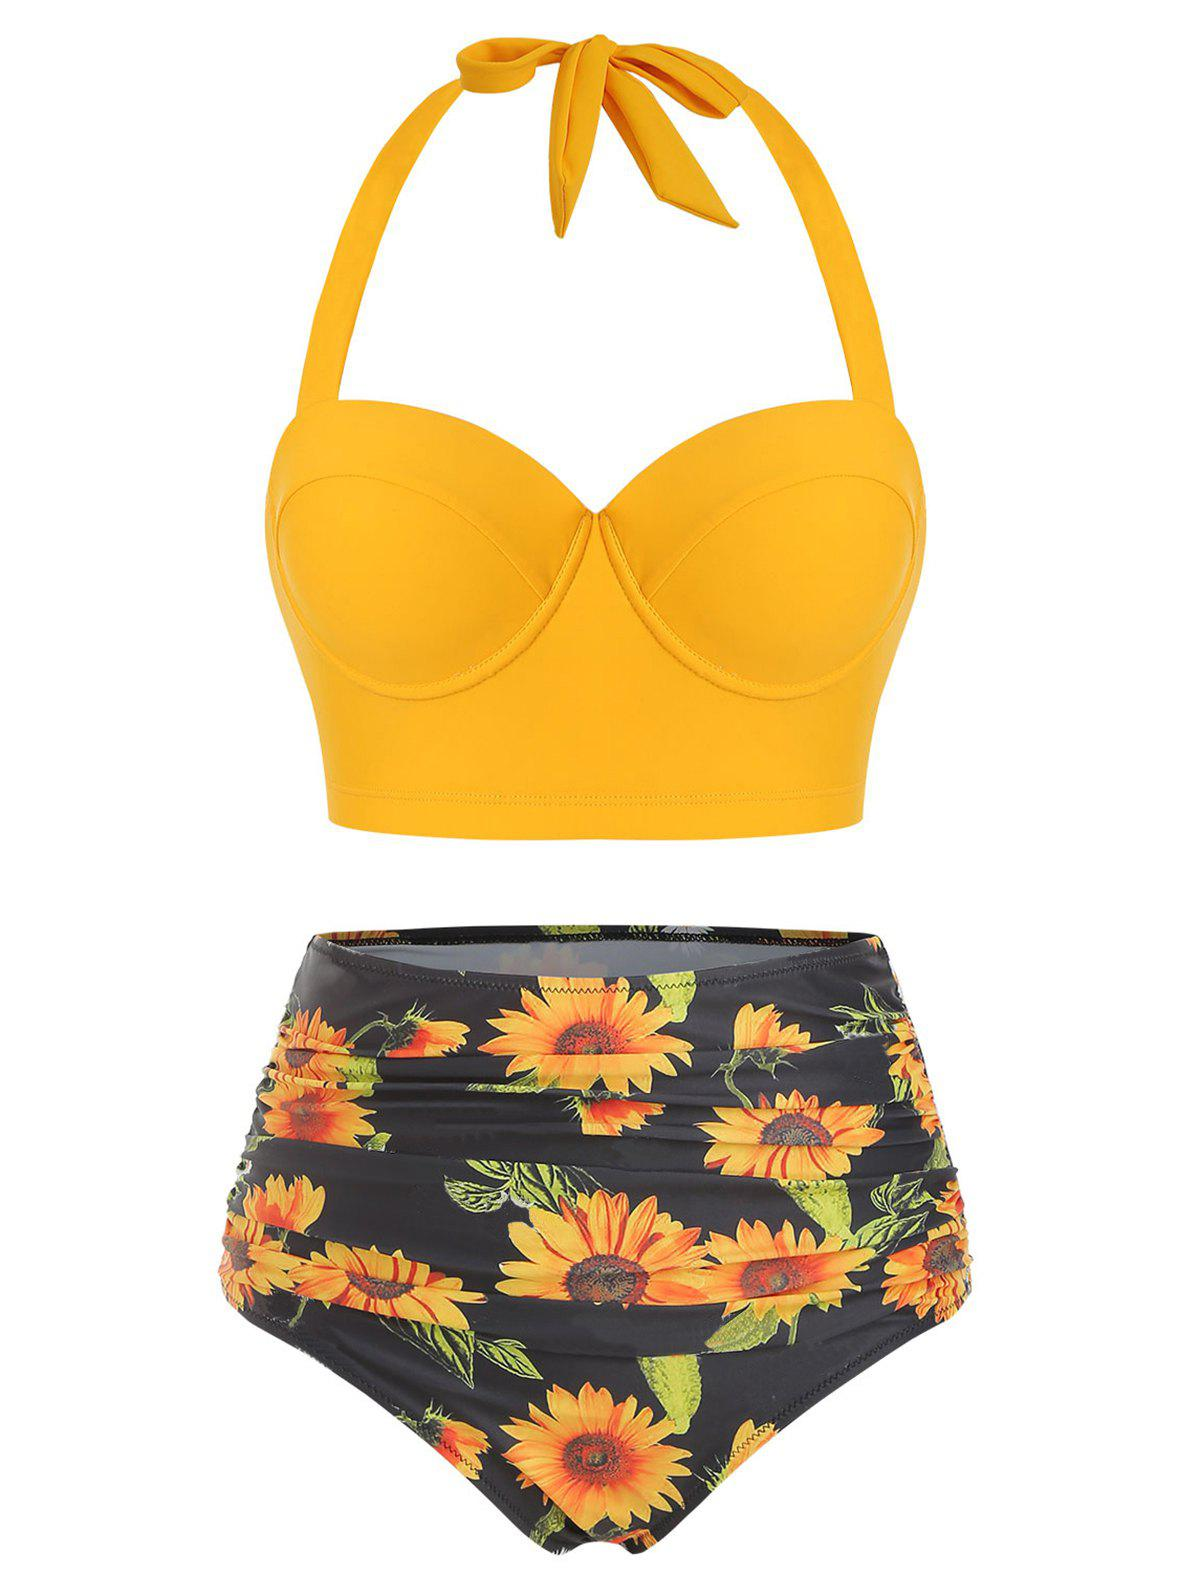 Sunflower Print Ruched Halter Bikini Swimsuit - YELLOW L